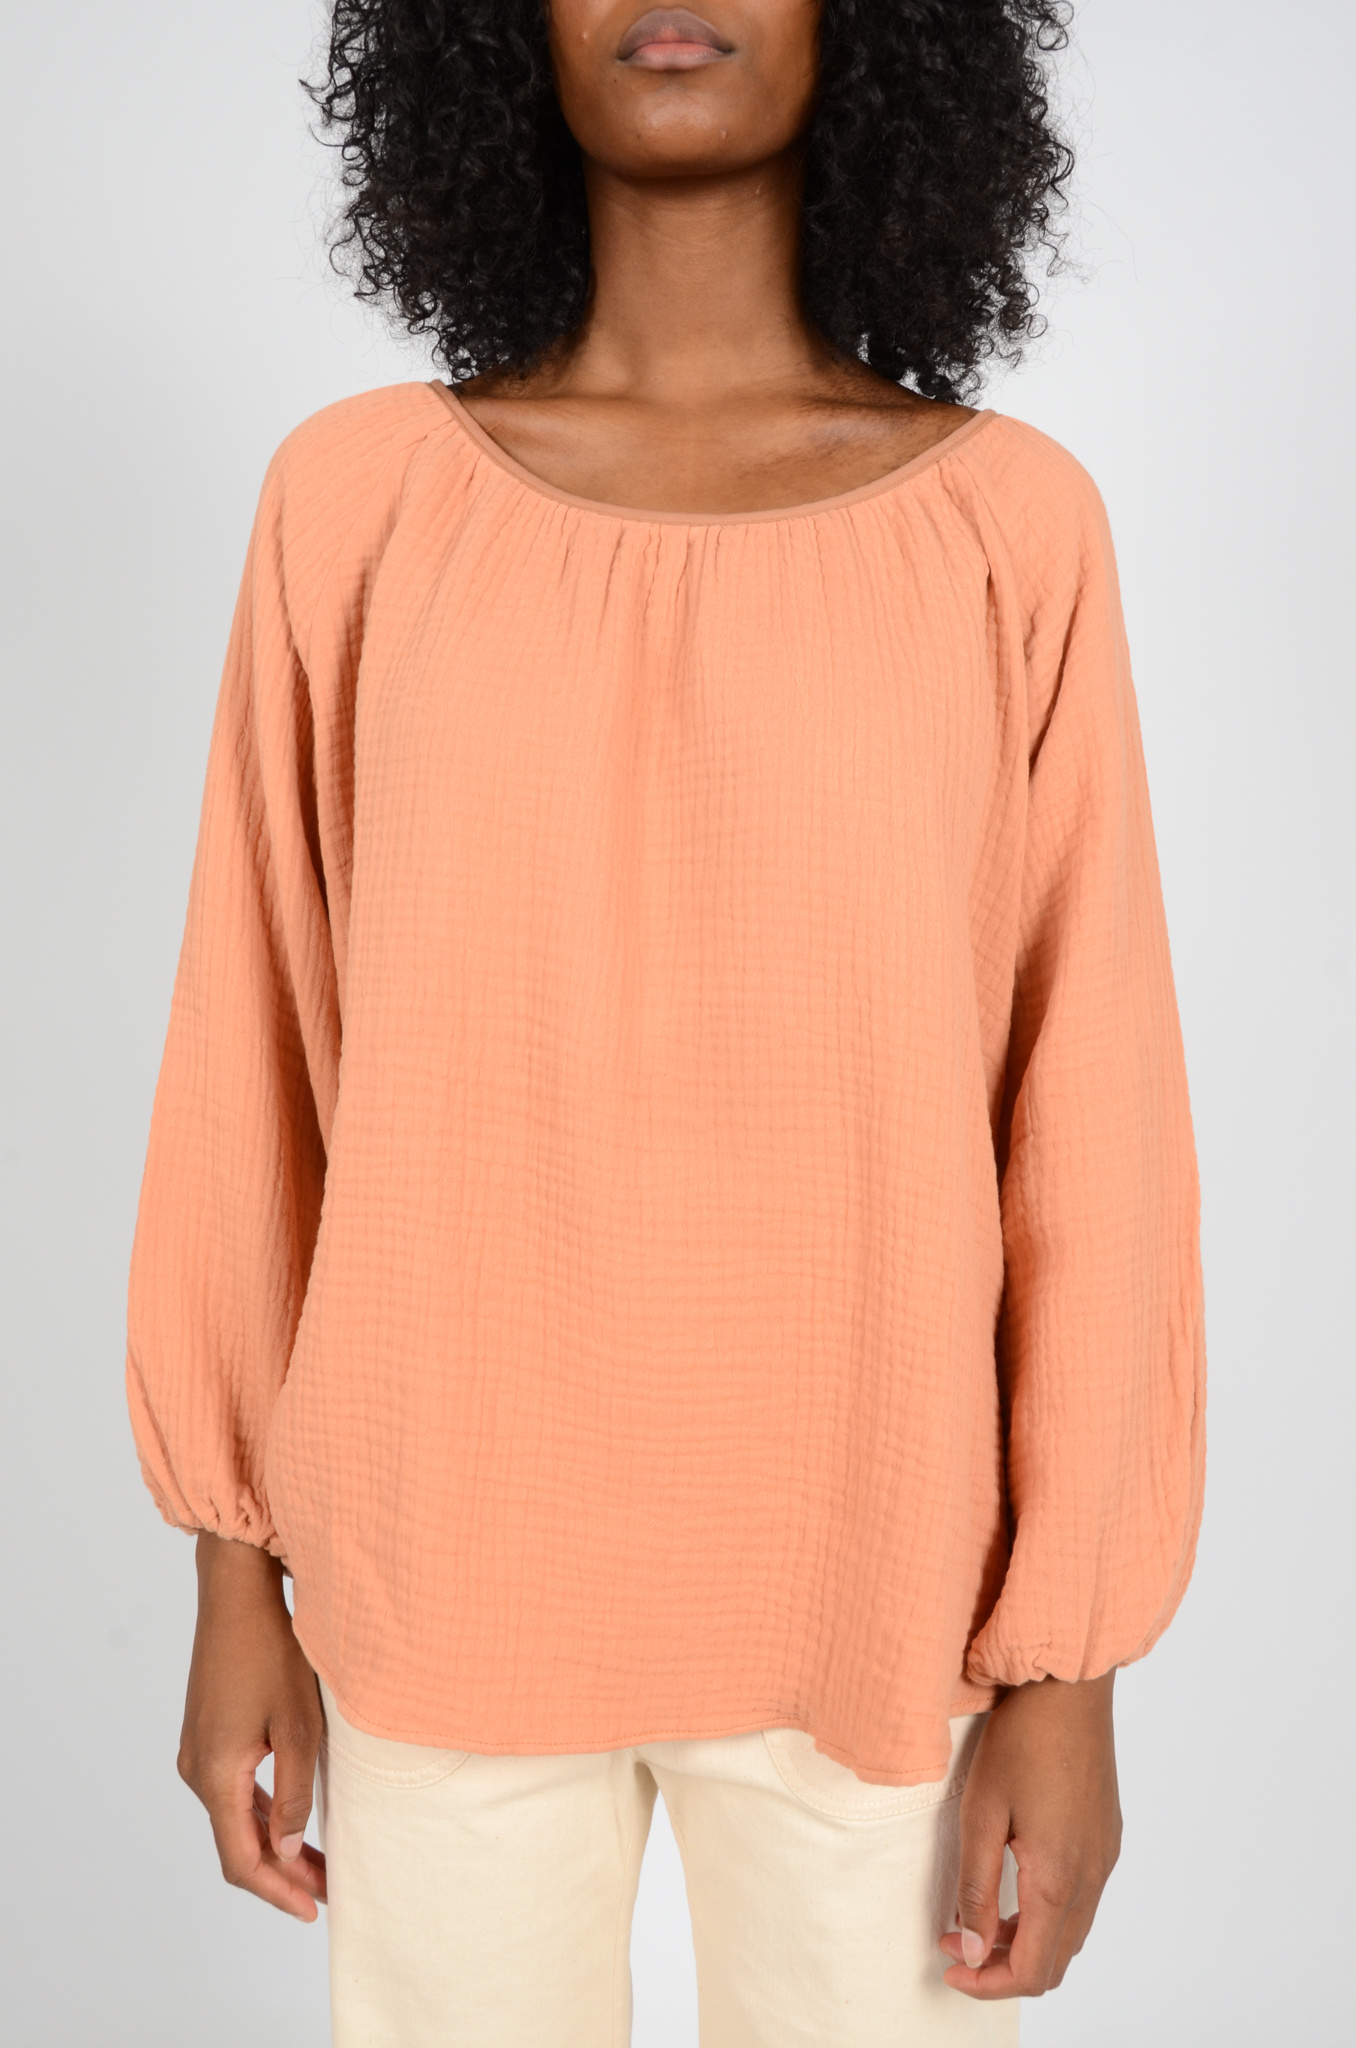 MORNING BLOUSE IN PEACH-1